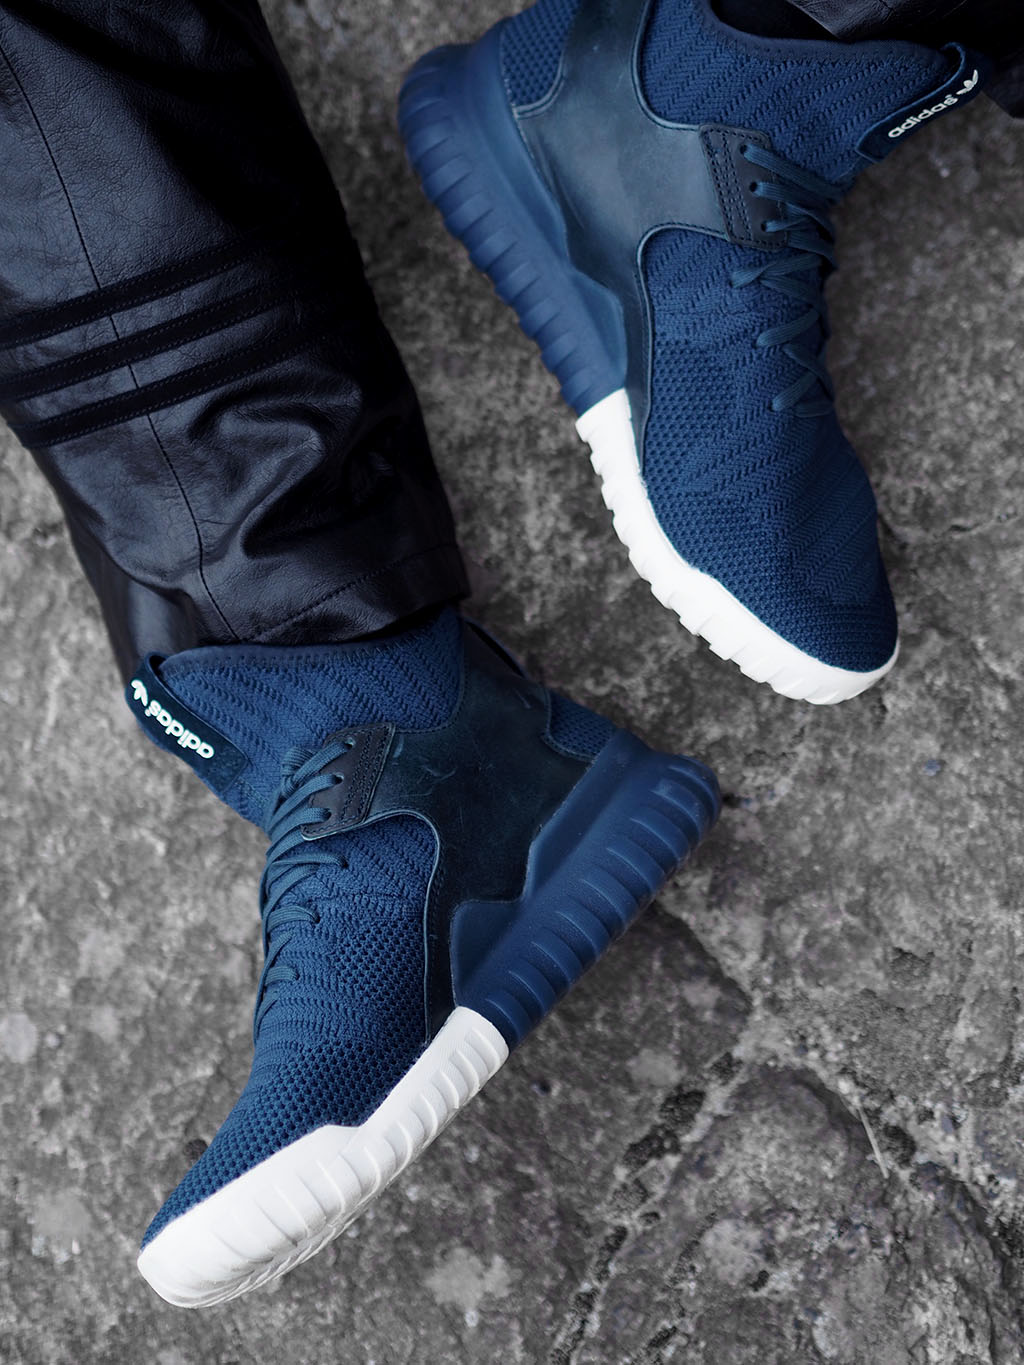 Cool Granite Colors The adidas Tubular X Primeknit